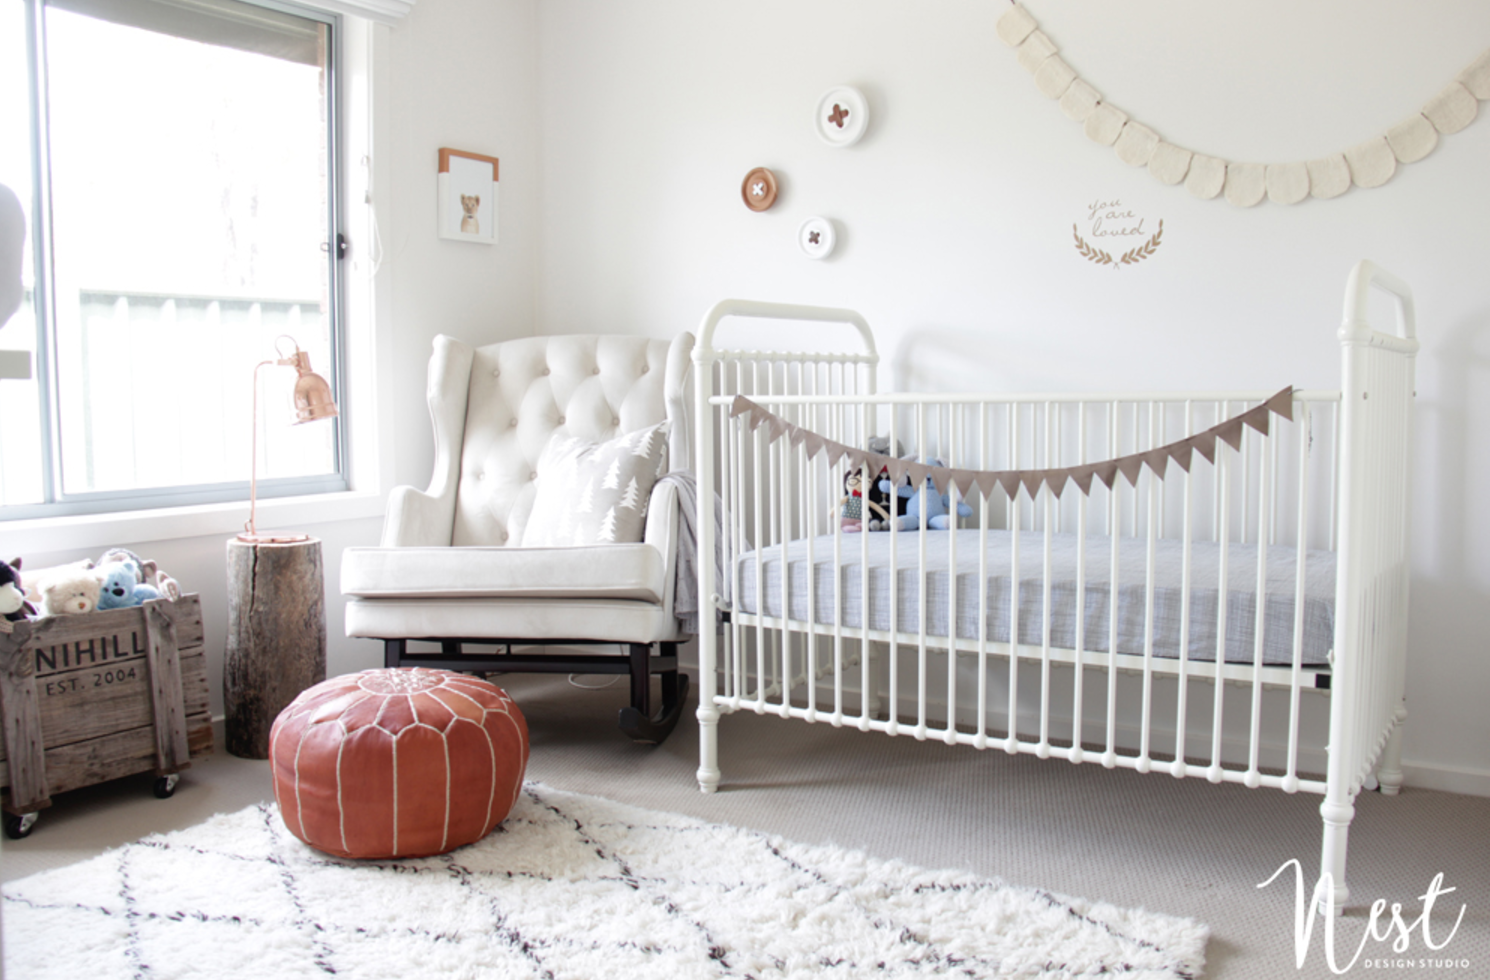 A Designer's Own Nursery